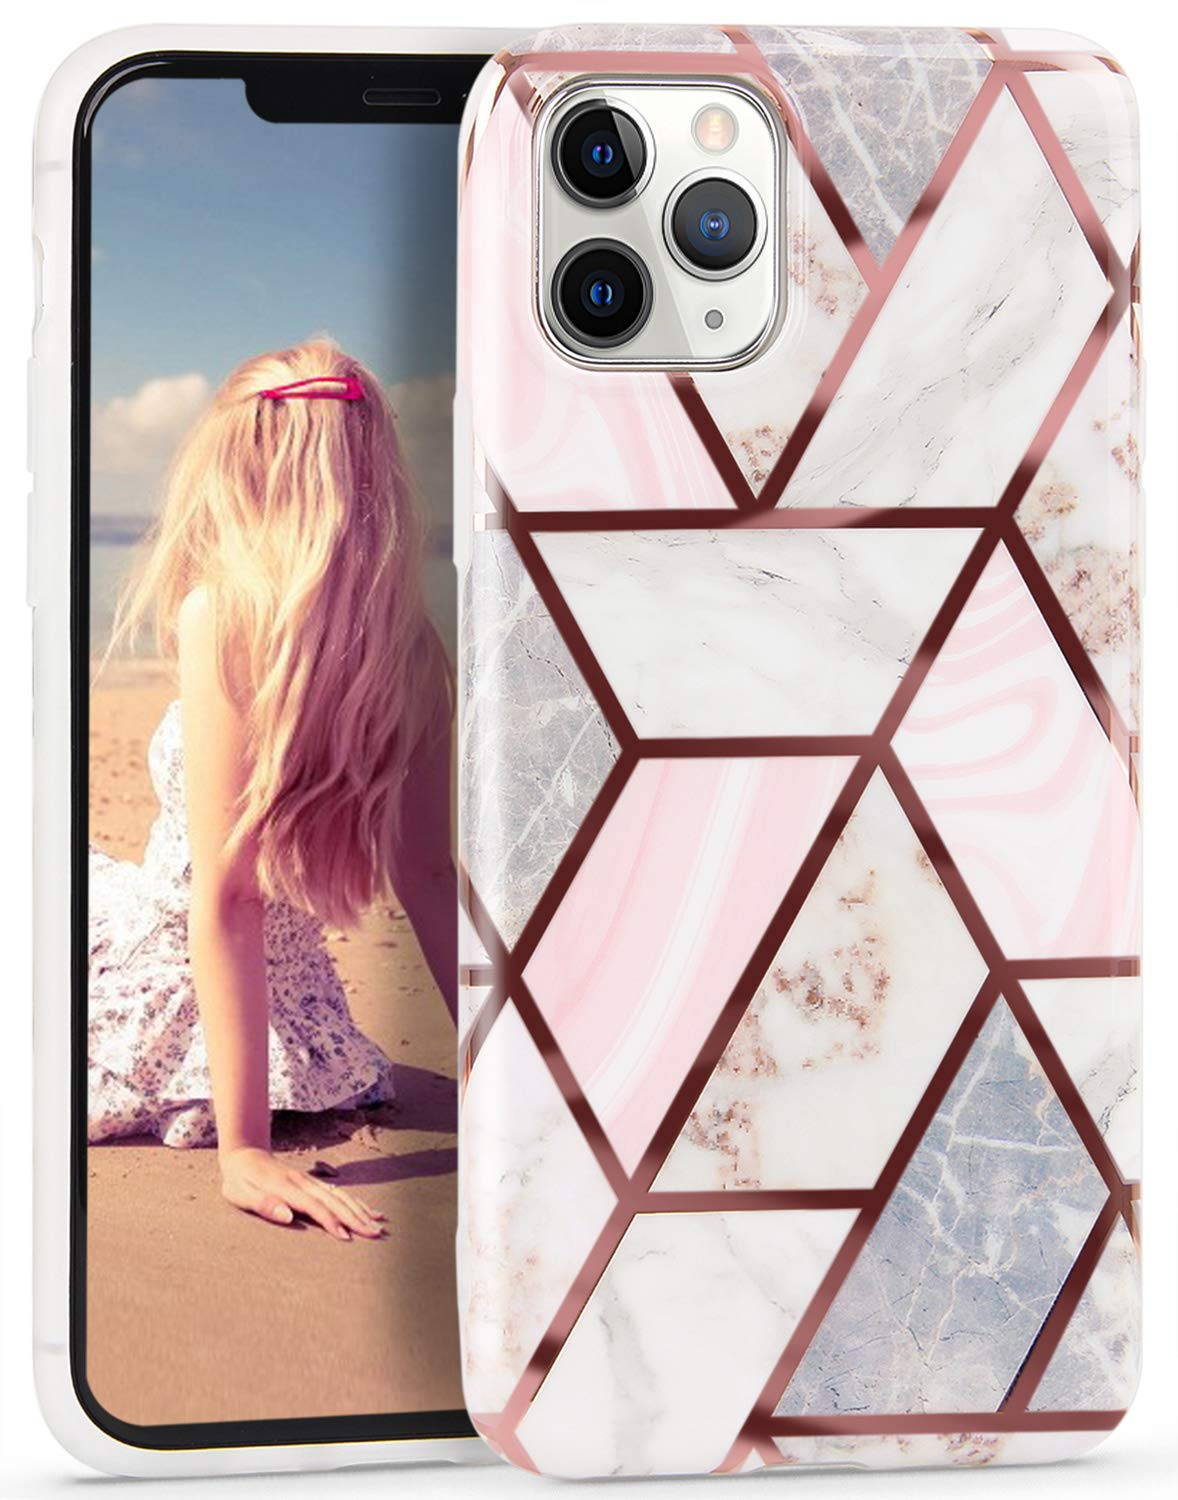 Imikoko Iphone 11 Pro Case Glitter Sparkle Marble Rose Gold Splice Design Stylish Shiny Clear Bumper Case Glossy Tpu Soft Rubber Silicone Cover For Iphone 11pro 5 8 Inch Pink White Splice